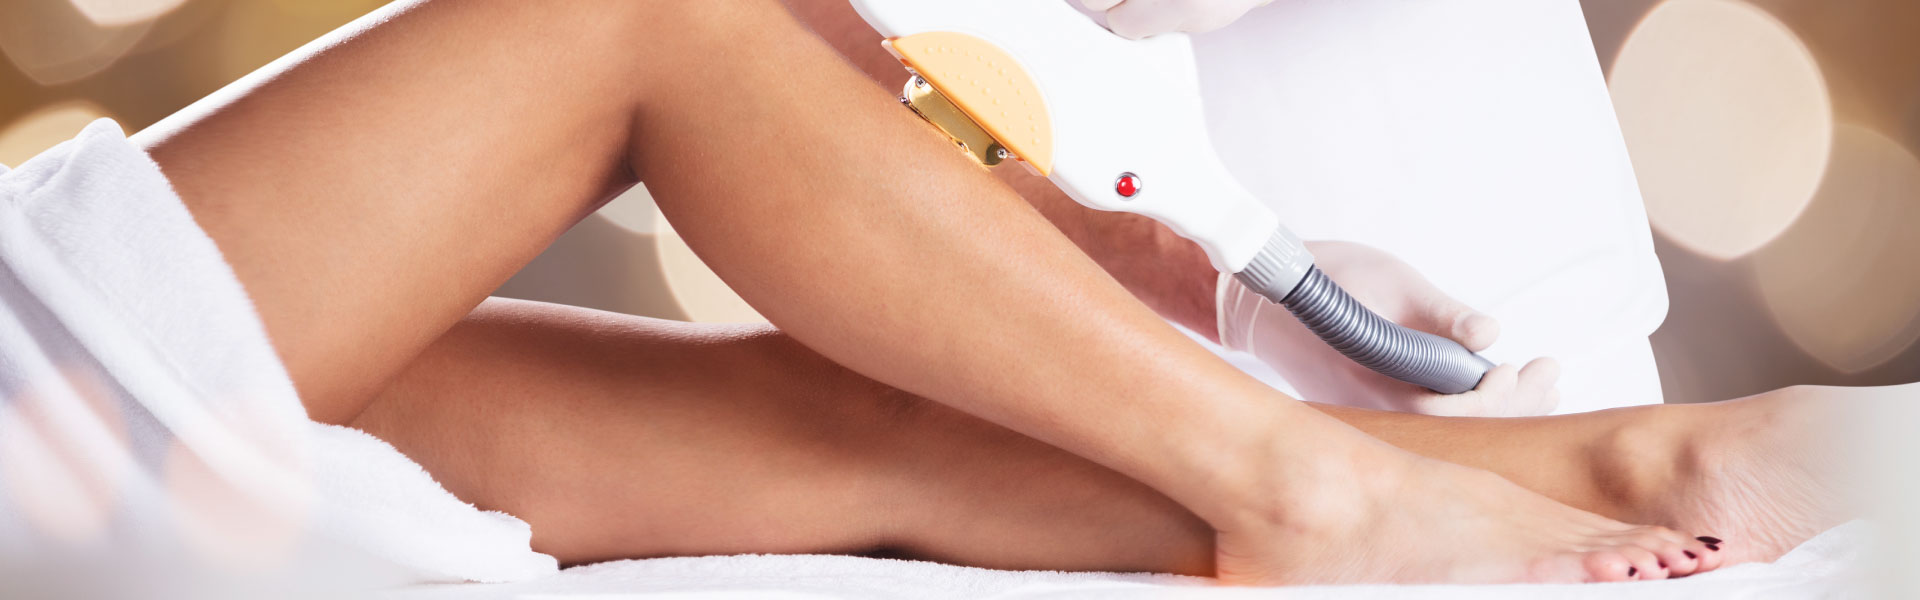 Cheshire Aesthetic Clinic | Inch Loss, Skin Care and Hair Removal | Legs and hair removal